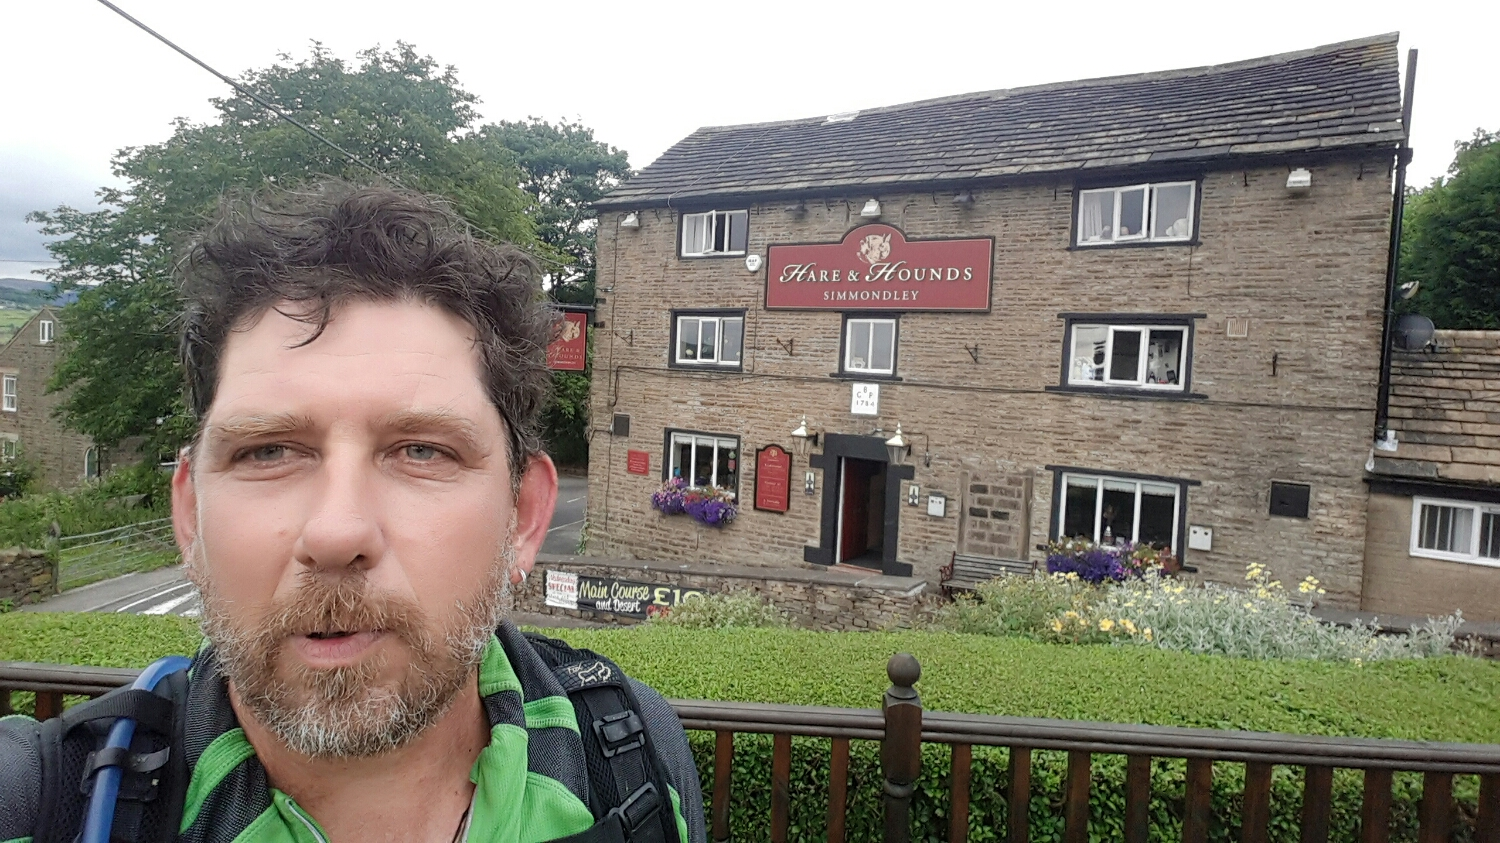 Whats this, a Pub! Might need to stop in for a taste!